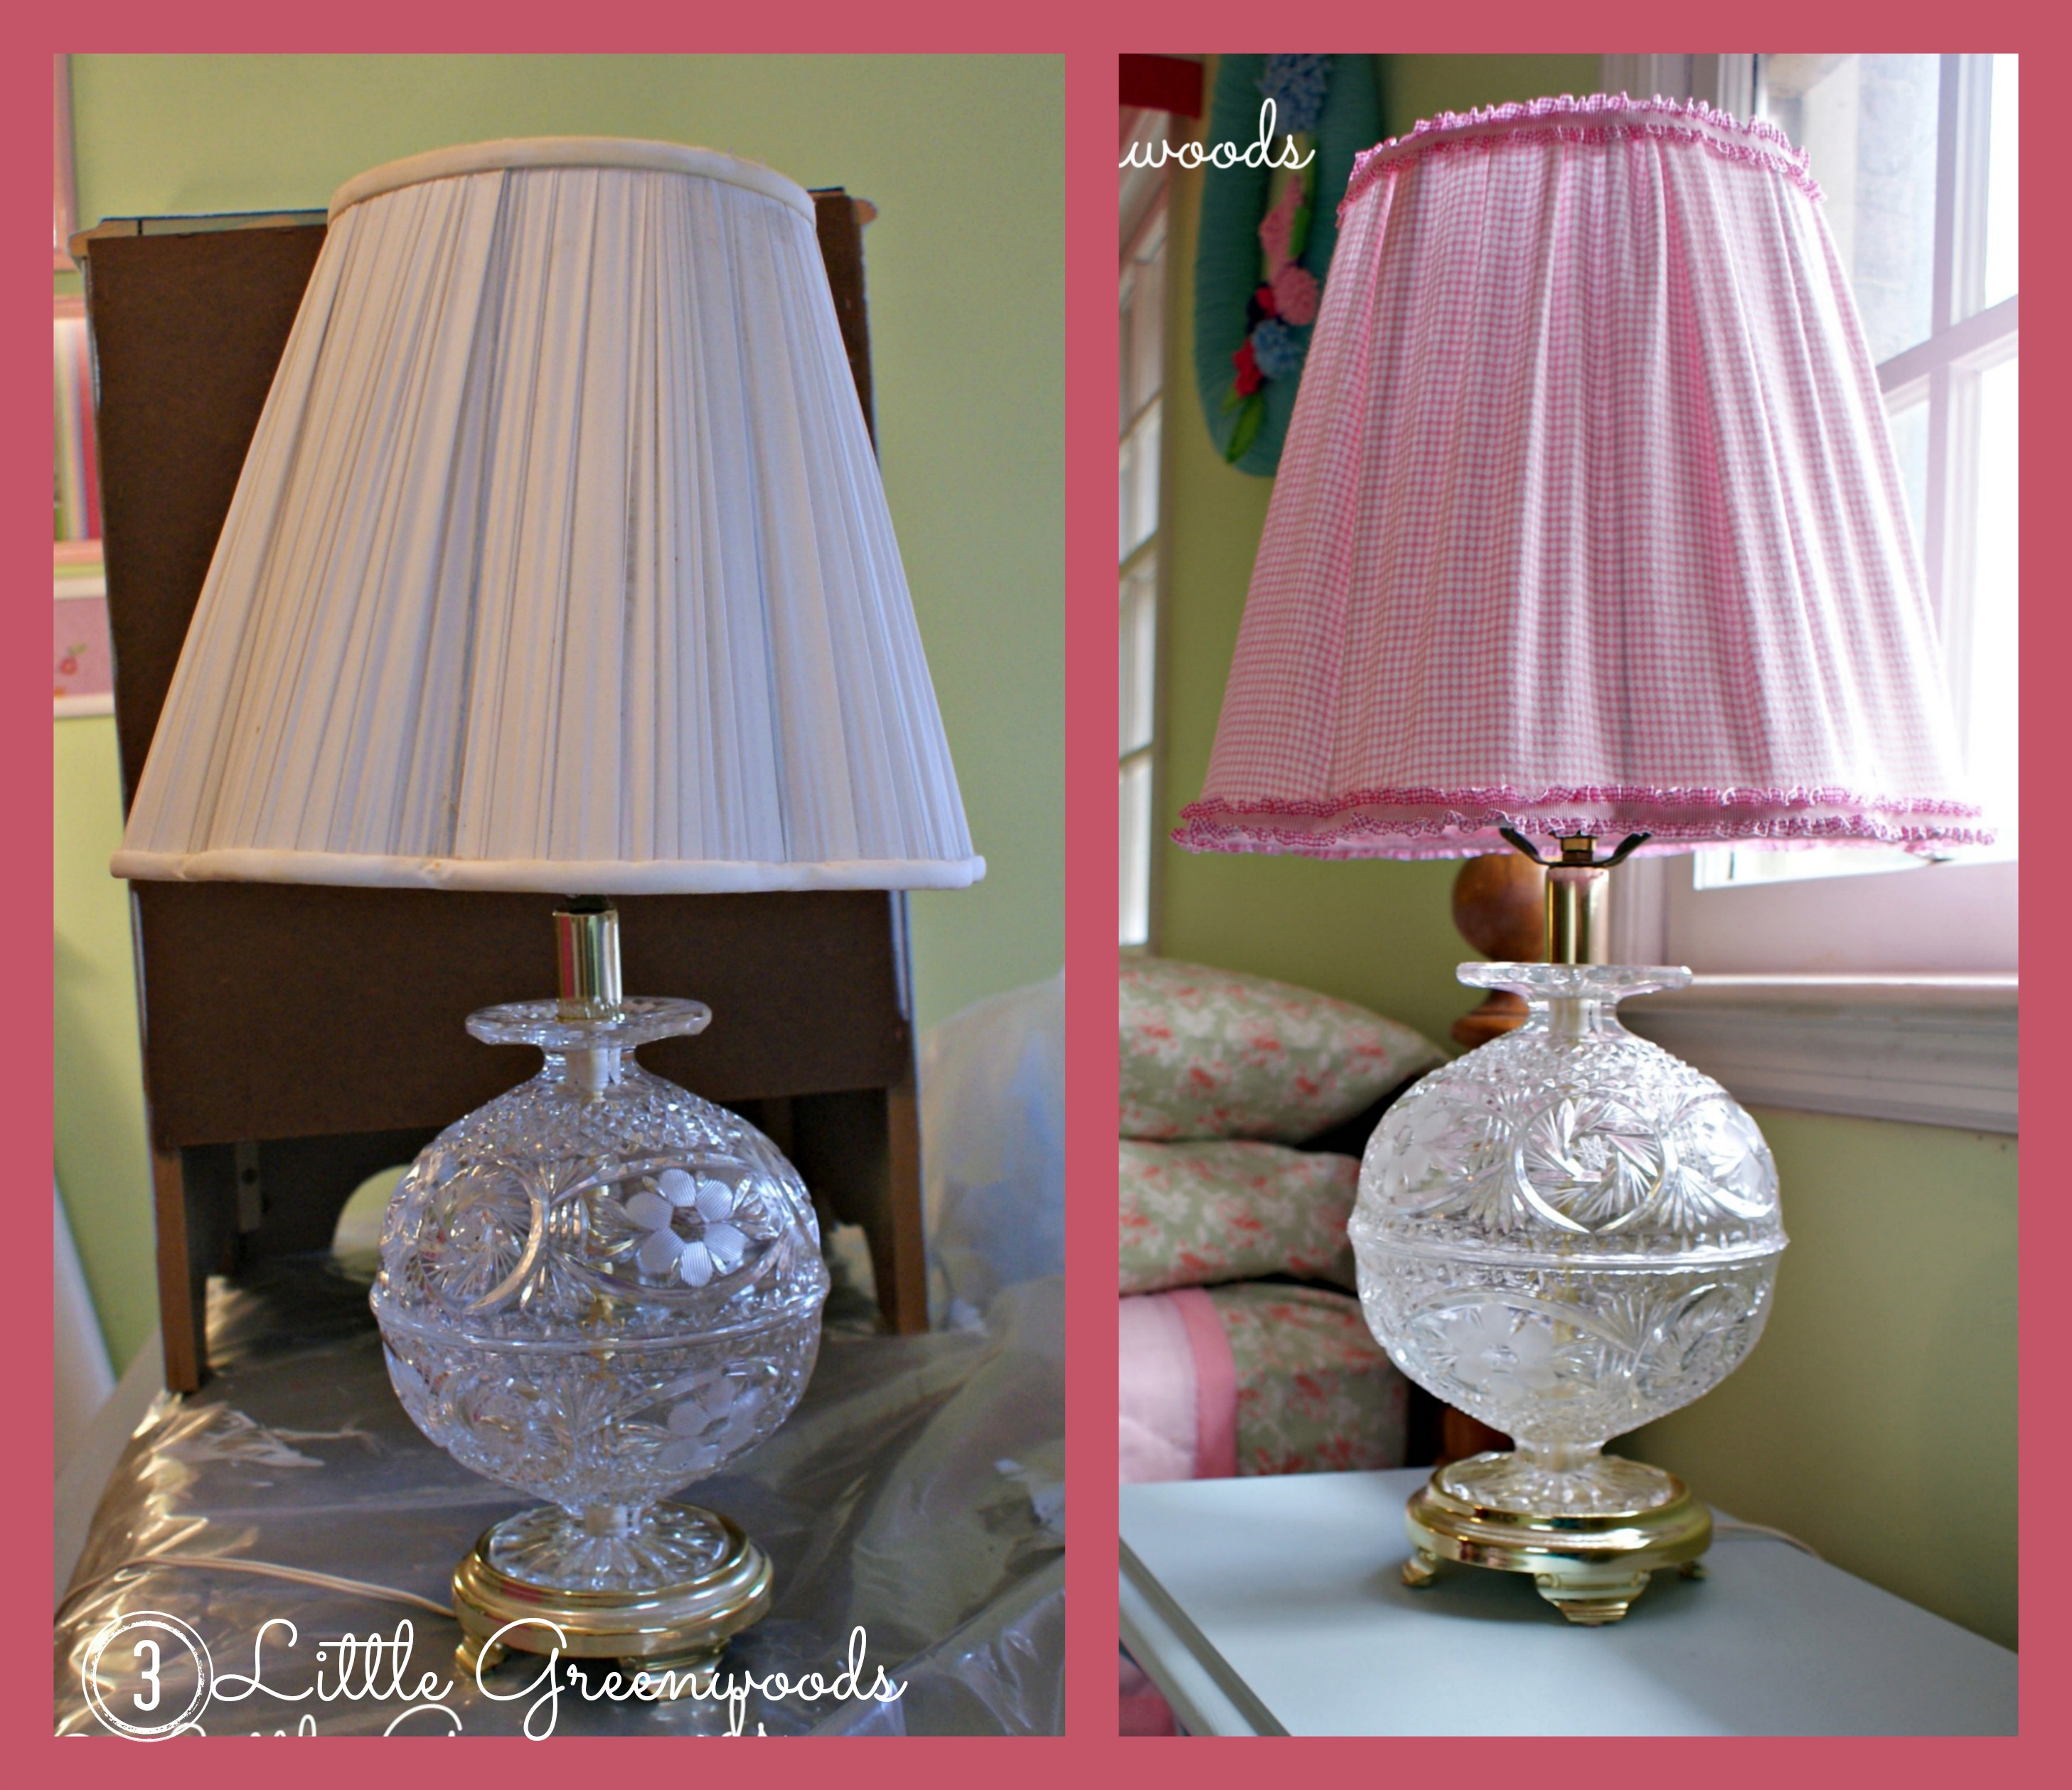 bedside lamp decorative have small purple column crystal stand norman buy elegance awesome harvey of lamps side with pattern glass bedroom size ideas expensive chrome shades inspirational full soula lead unique tall frame sale retro gold table for cream crystals online brown shade base gallery